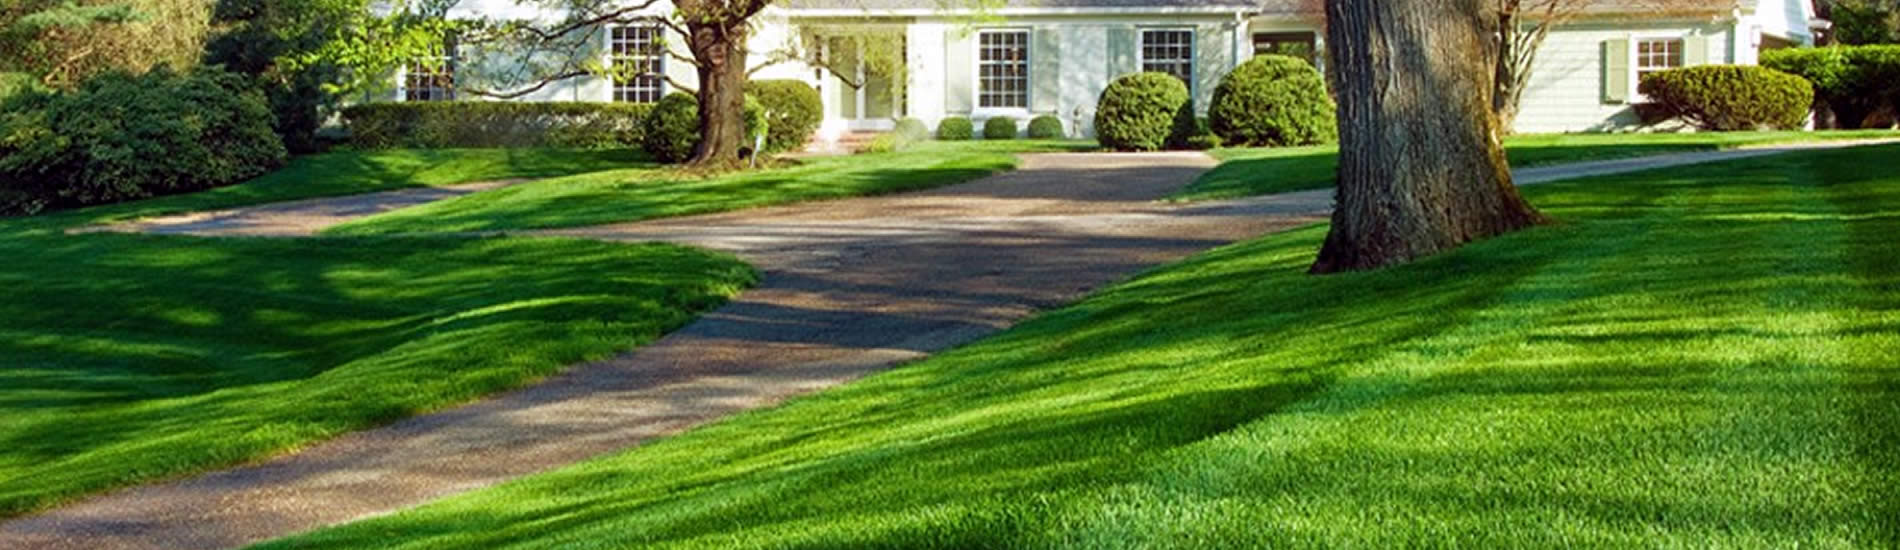 Lawn Care Landscaping Services Pennsylvania